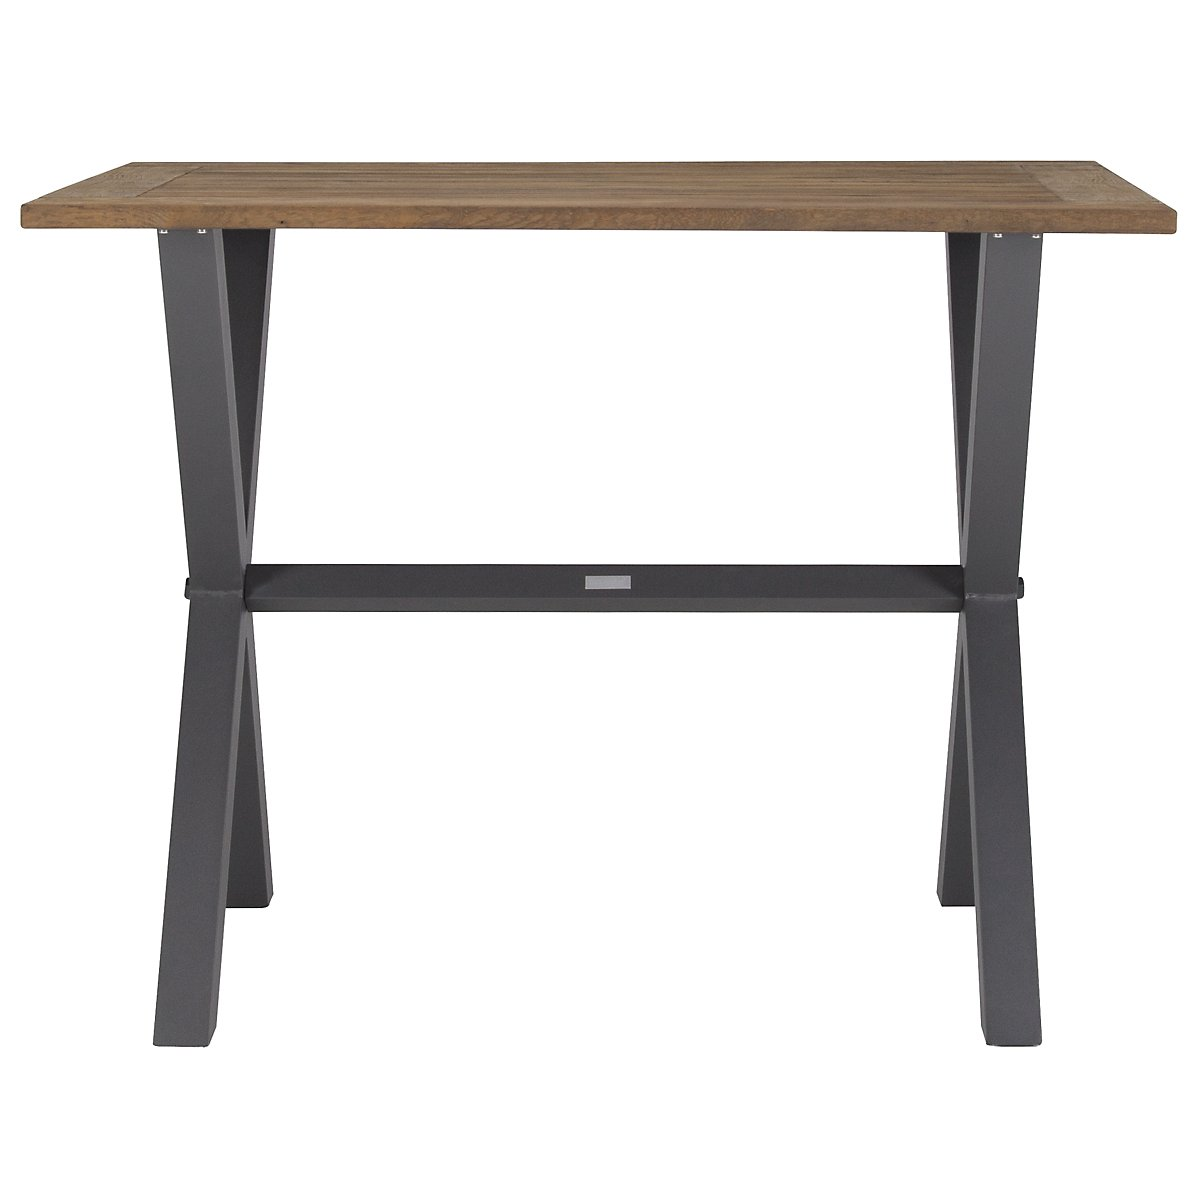 "Canyon Dark Tone Teak 54"" Pub Table"